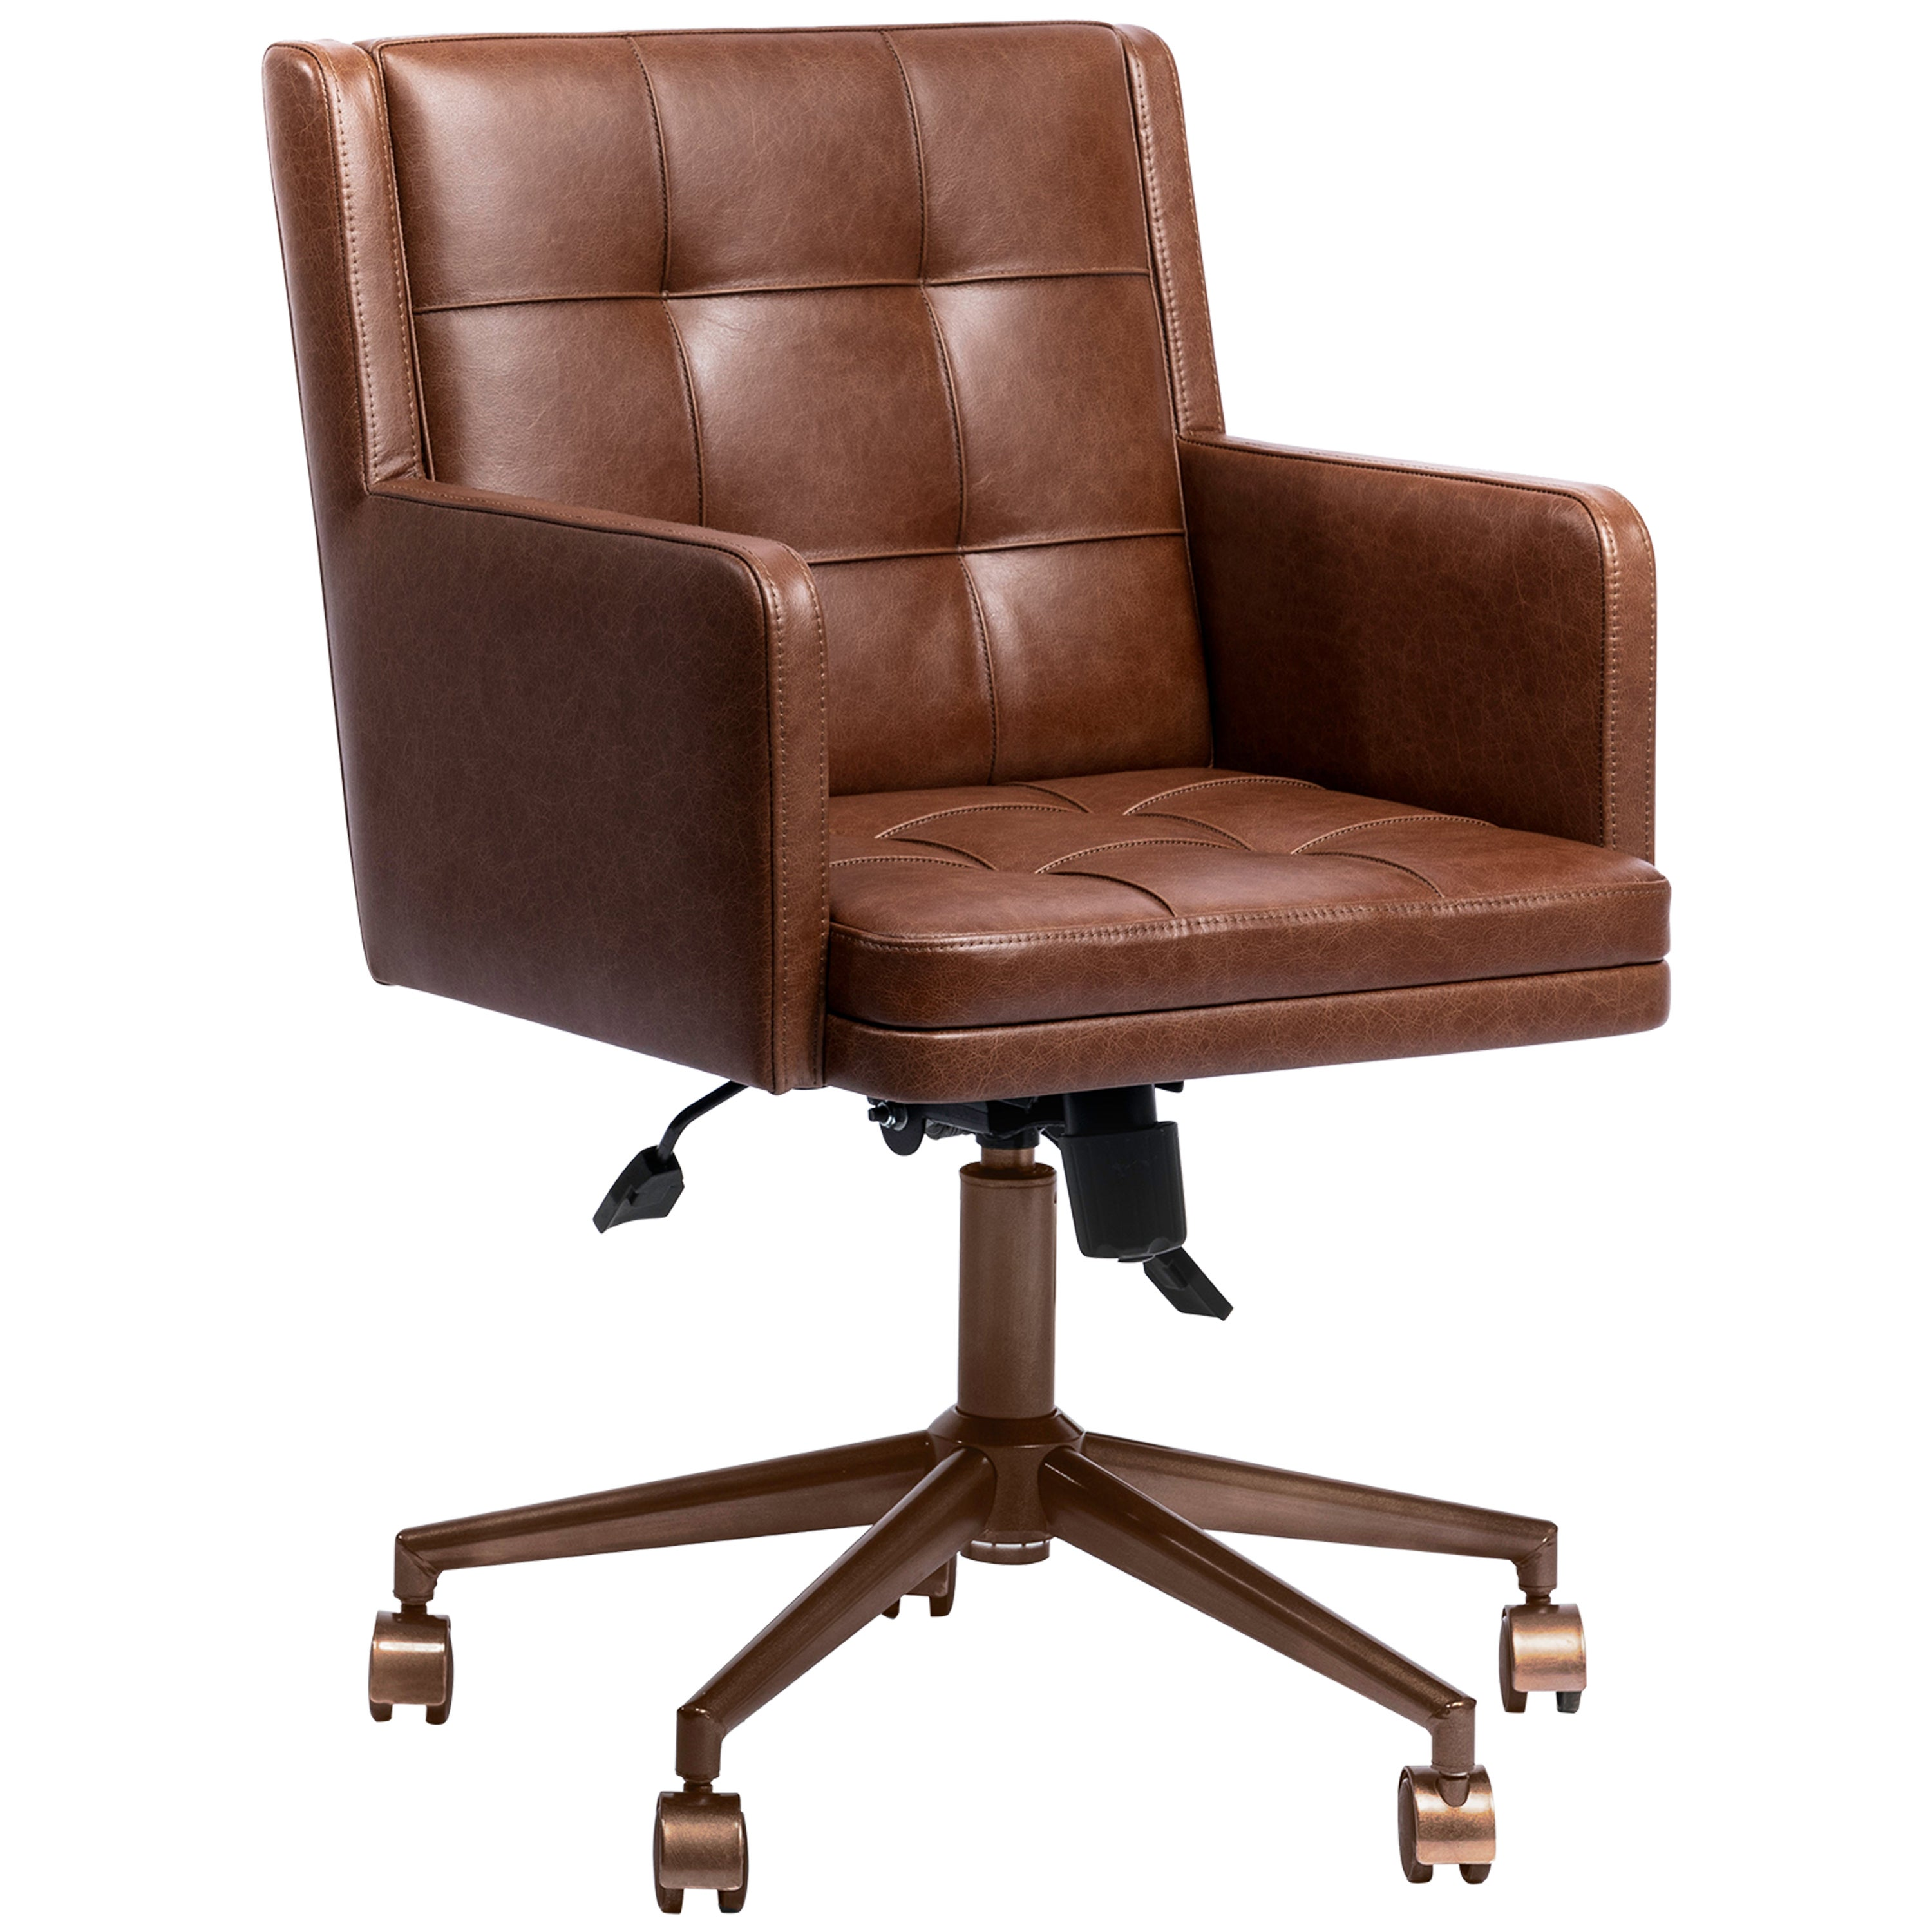 Office Chair, International Style Leather Office Chair